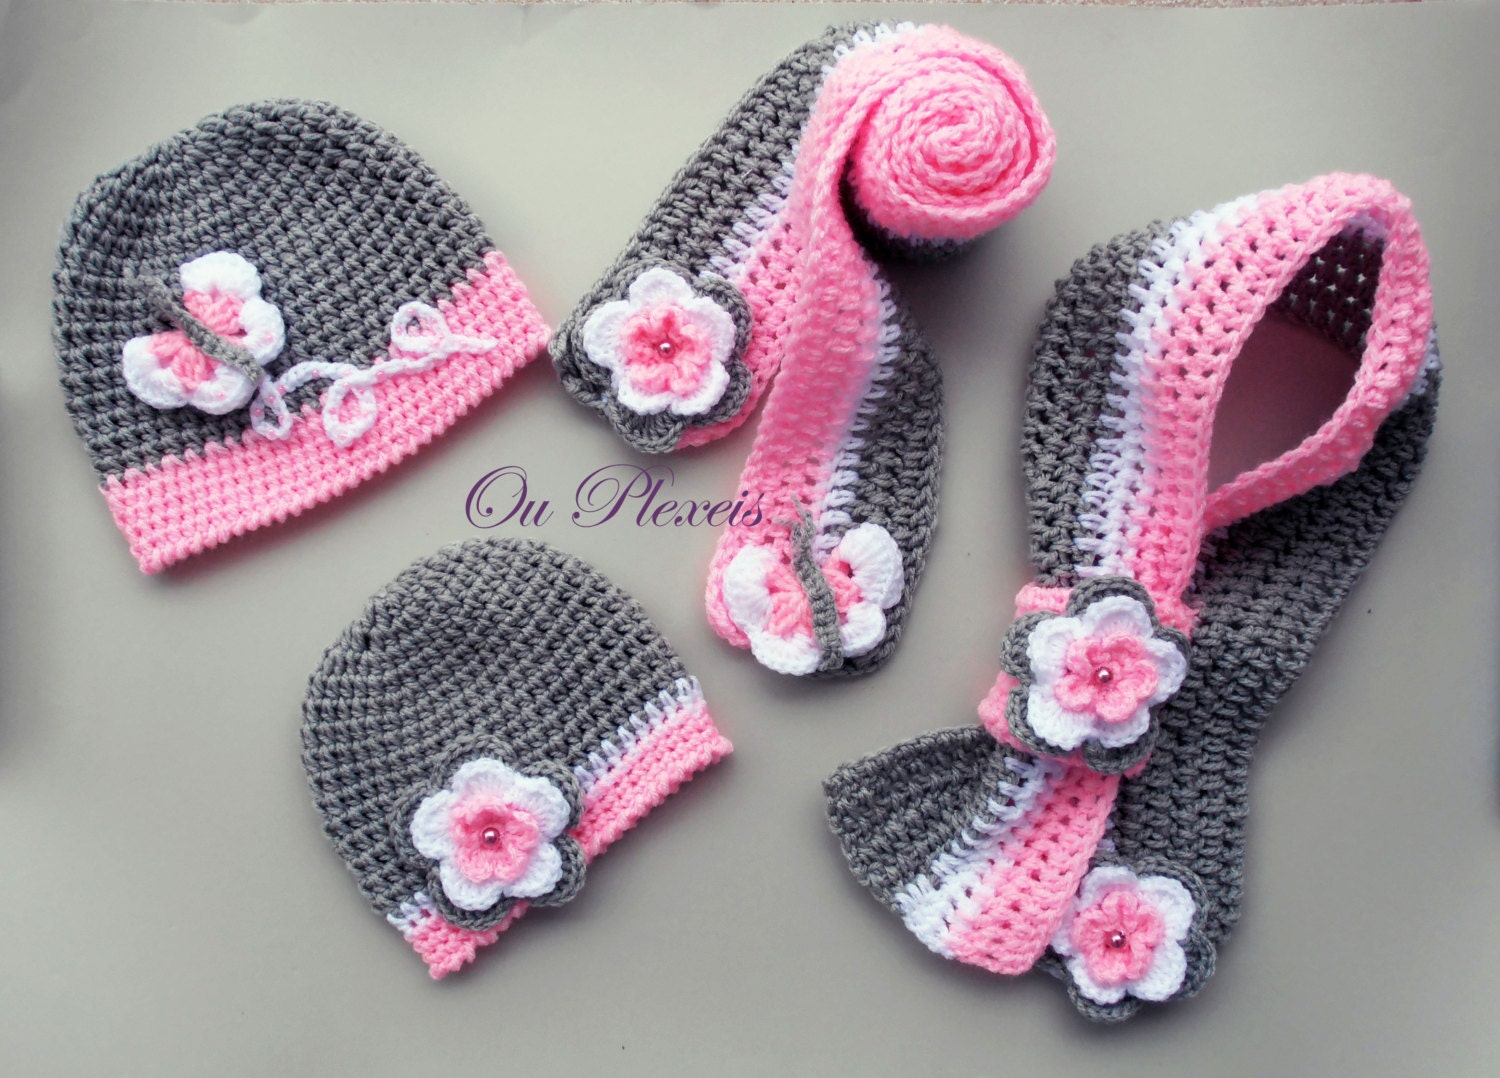 crochet set hat and scarf crochet baby girl hat and scarf. Black Bedroom Furniture Sets. Home Design Ideas